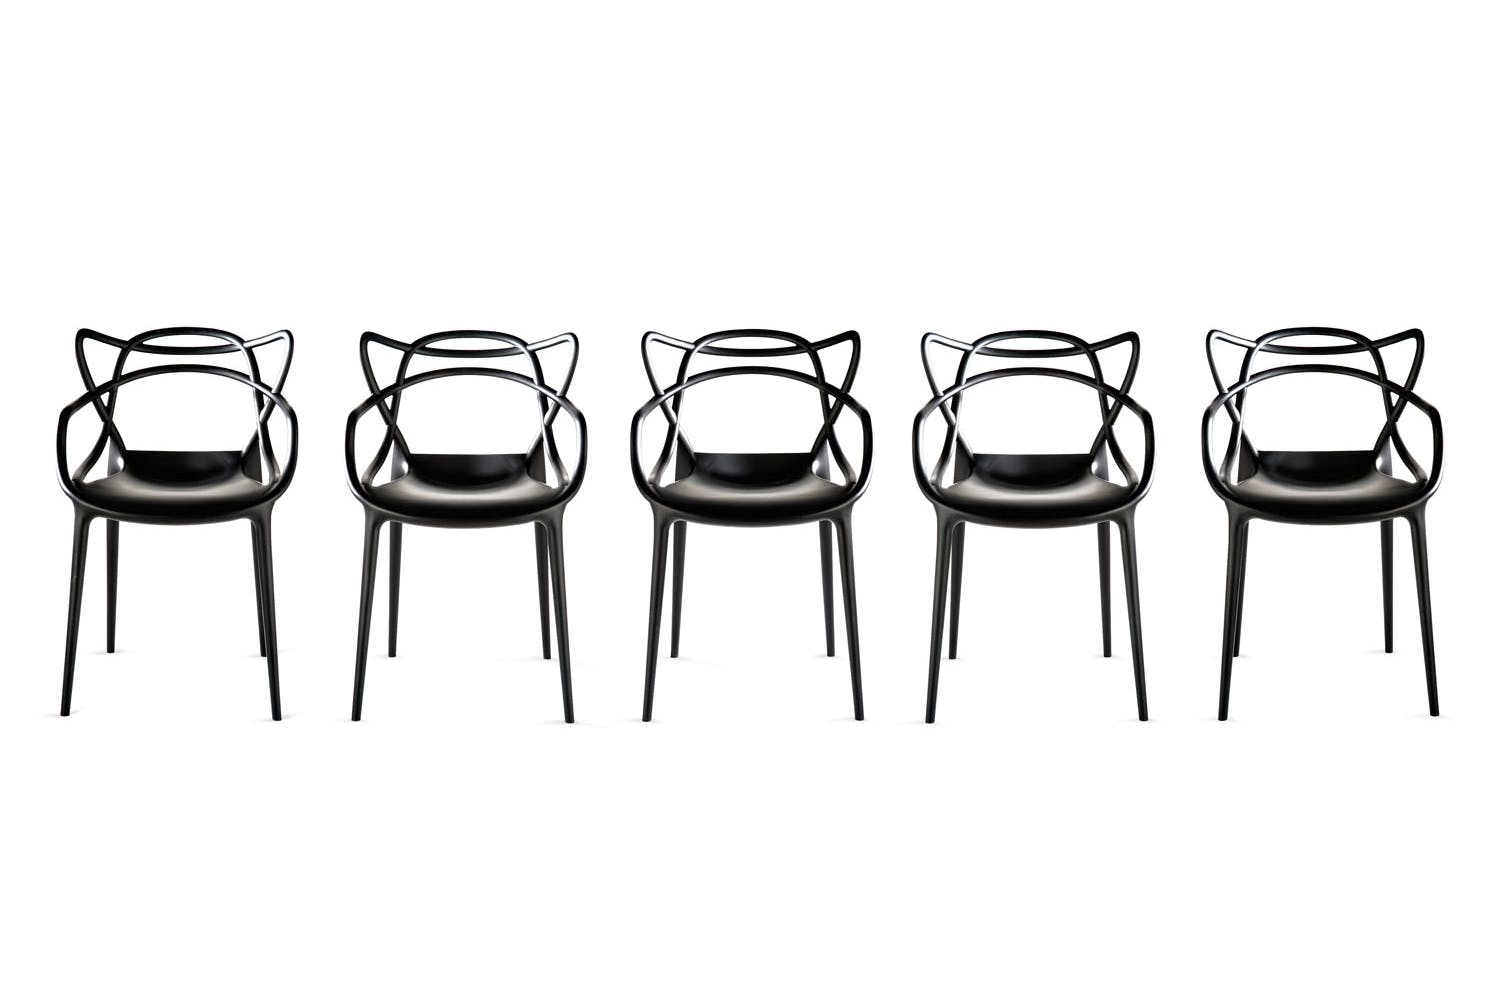 masters chair with arms by philippe starck with eugeni quitllet for